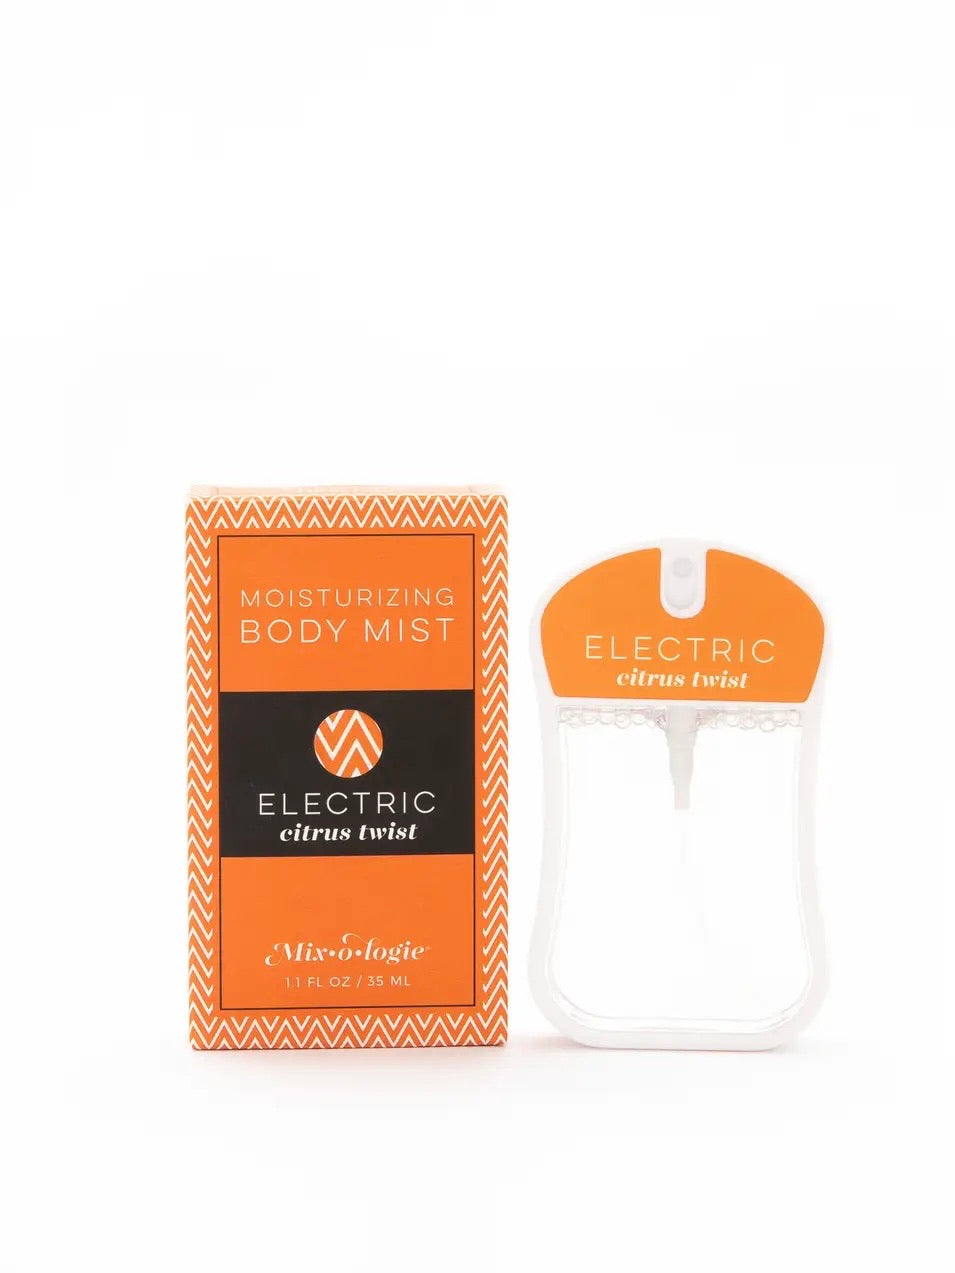 Electric - Moisturizing Body Mist